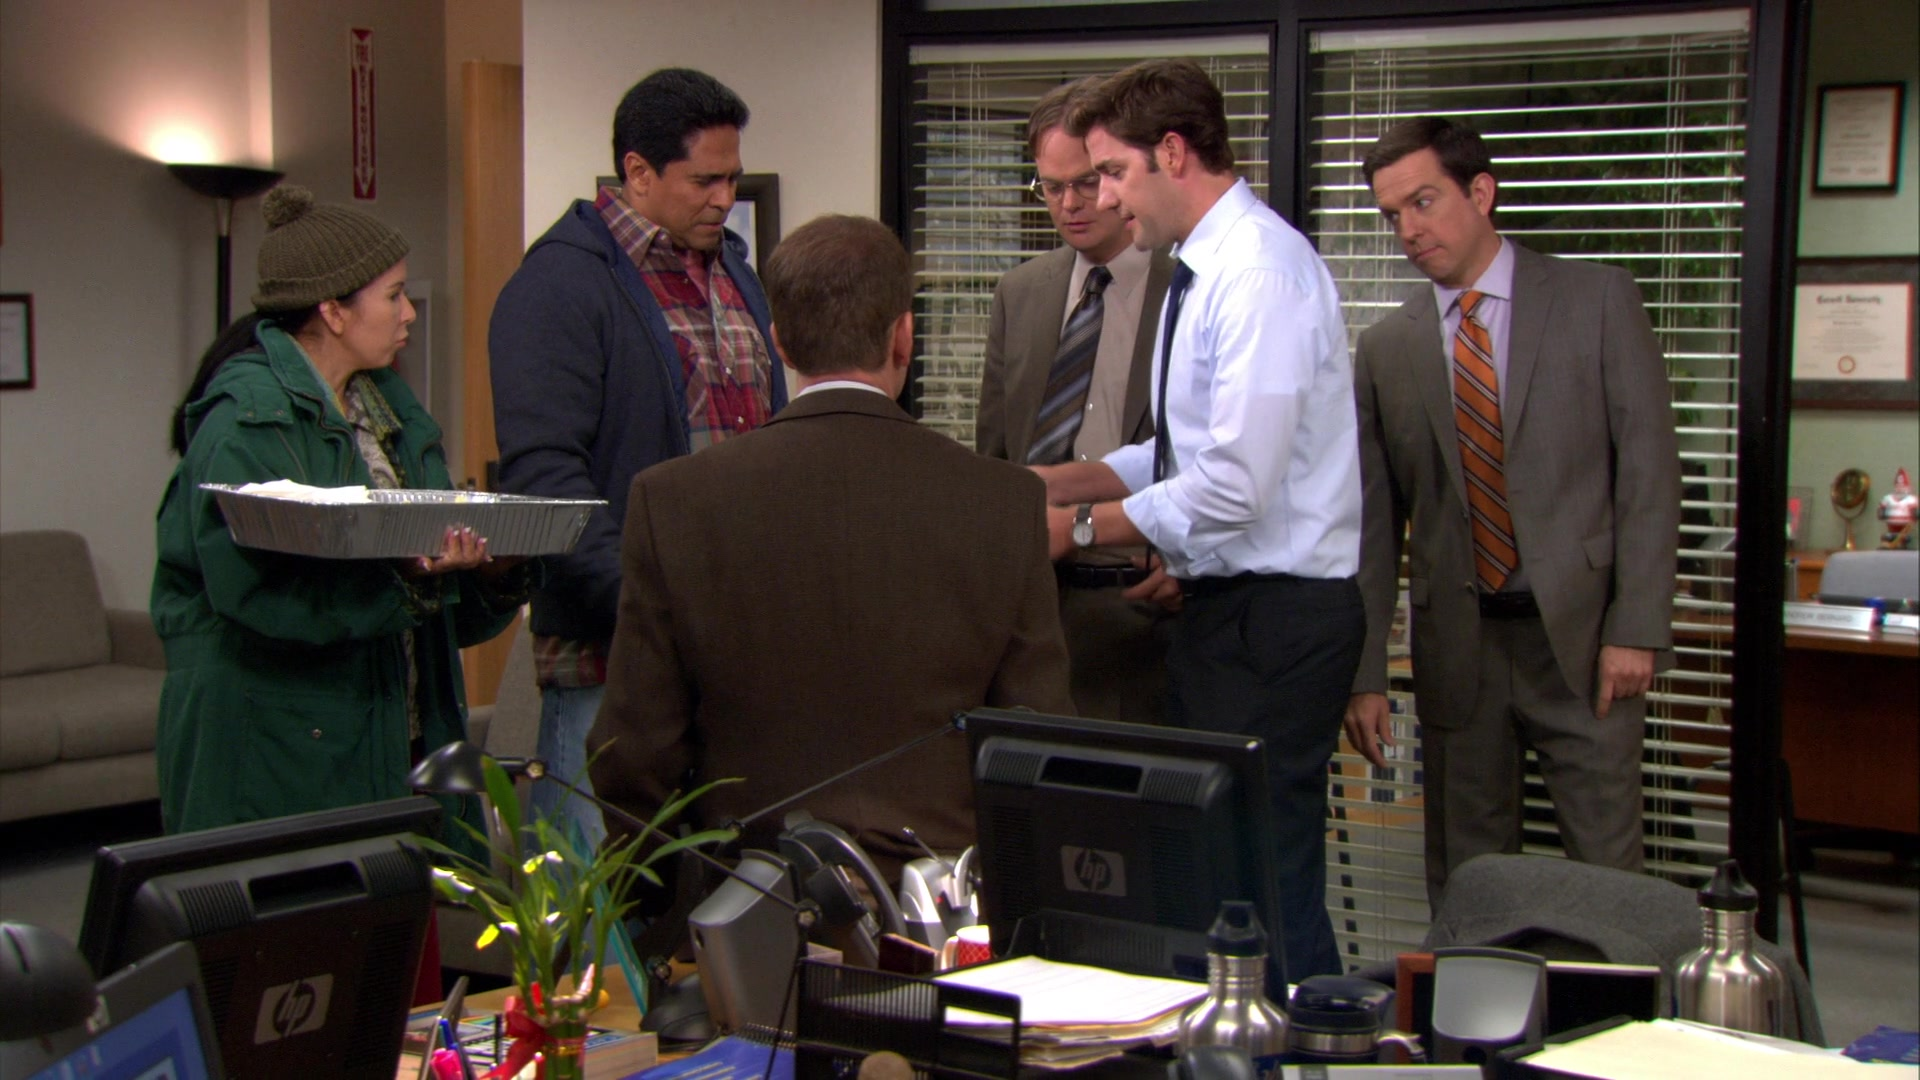 the office season 8 episode 20 shush